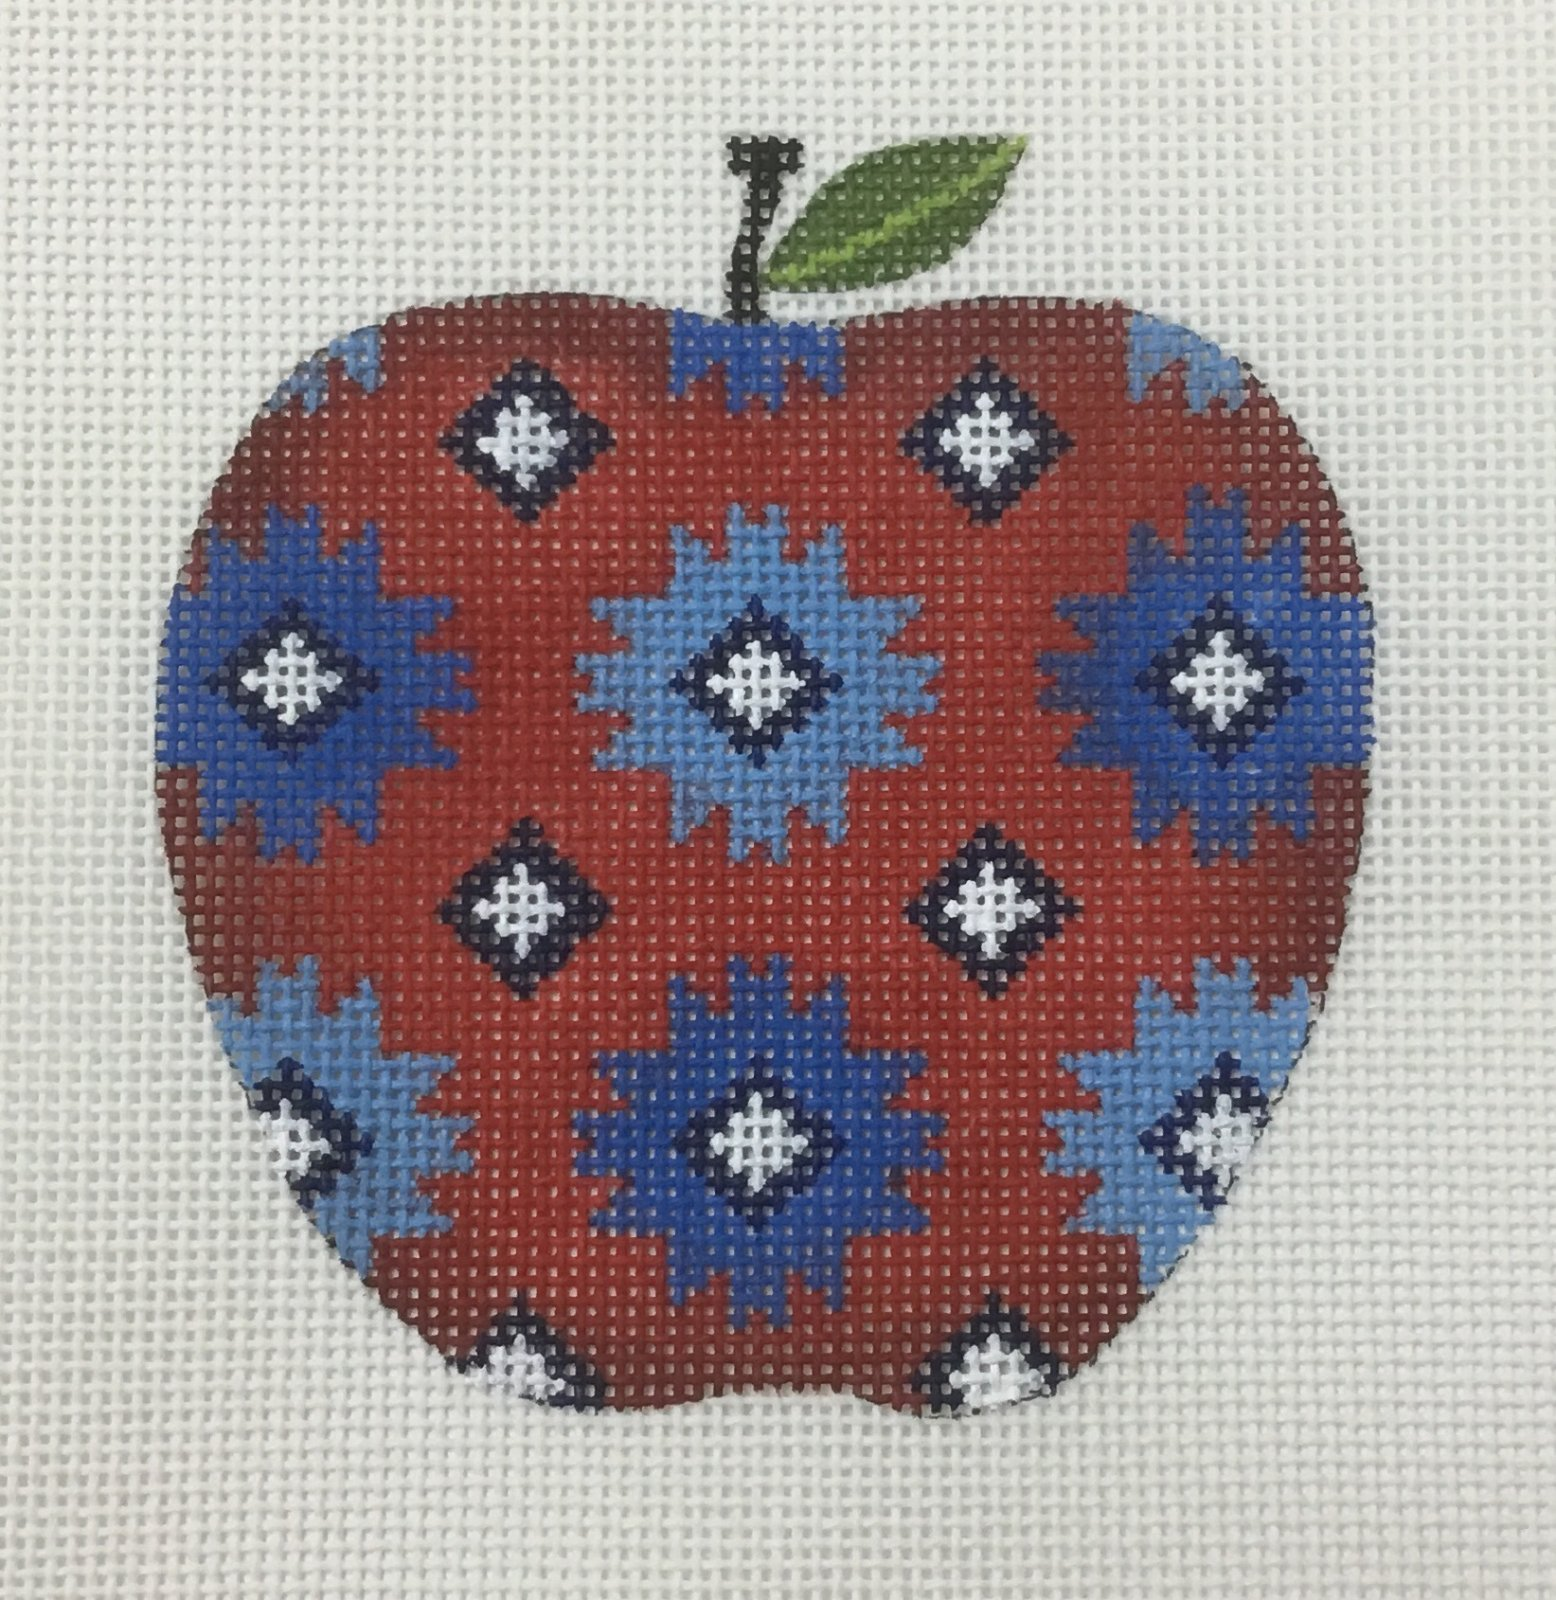 Apple,Indian Design,18ct.,3 1/2x3 1/2